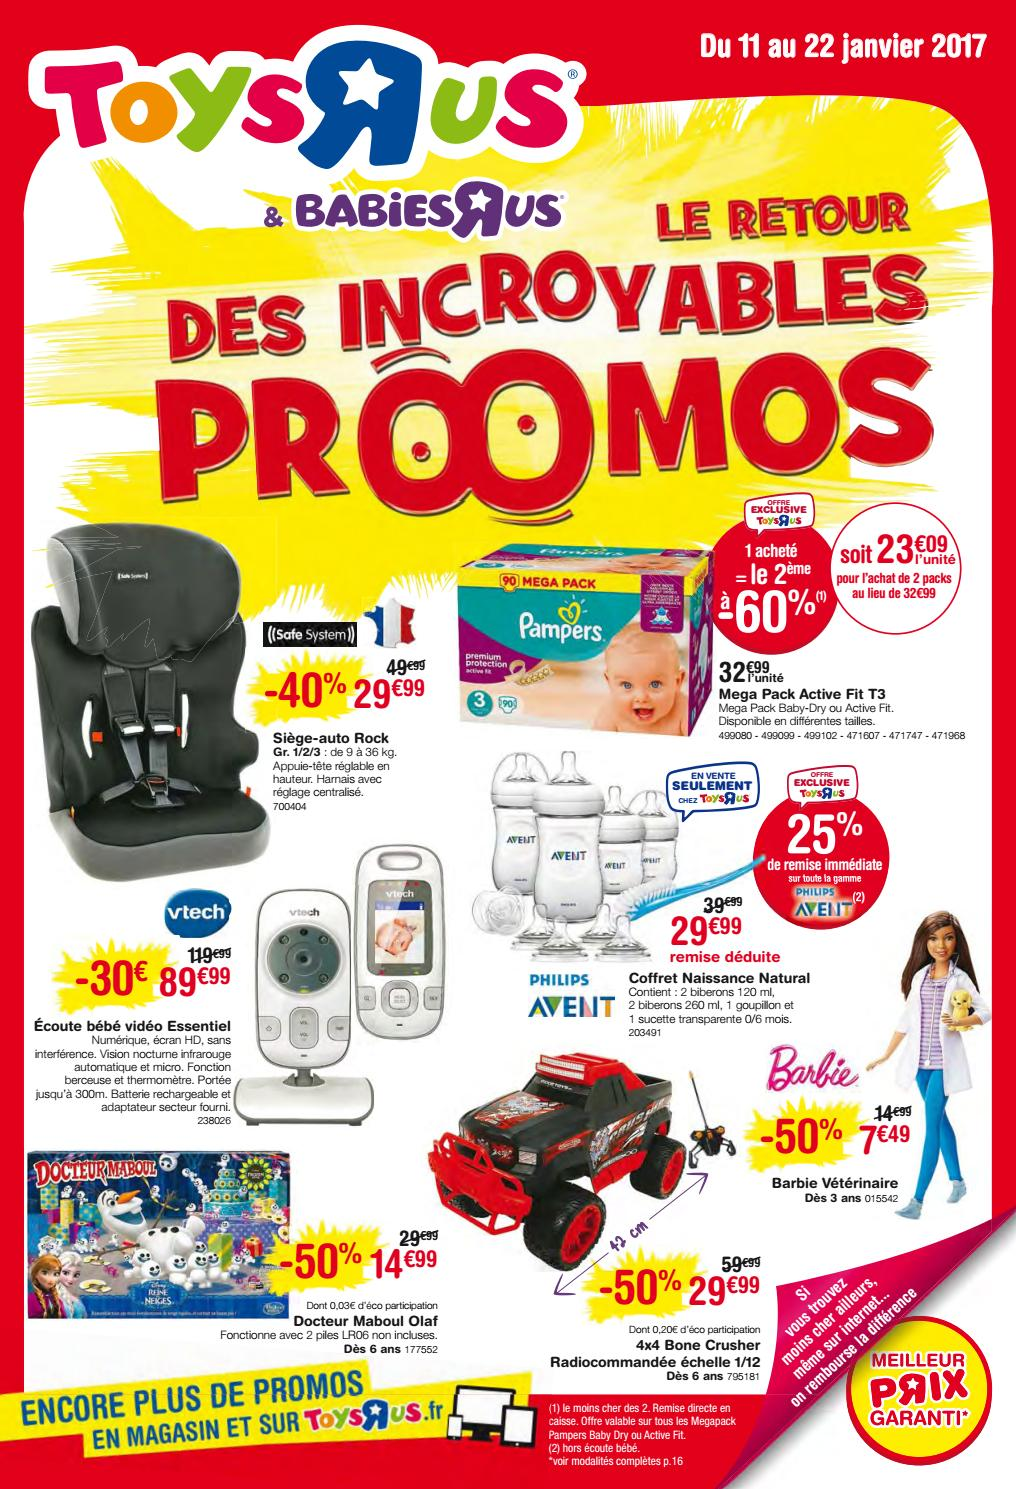 Babies'r'us Puériculture Yvernault Catalogue 2017 Toys'r'us By Bébé 0Pwk8nO